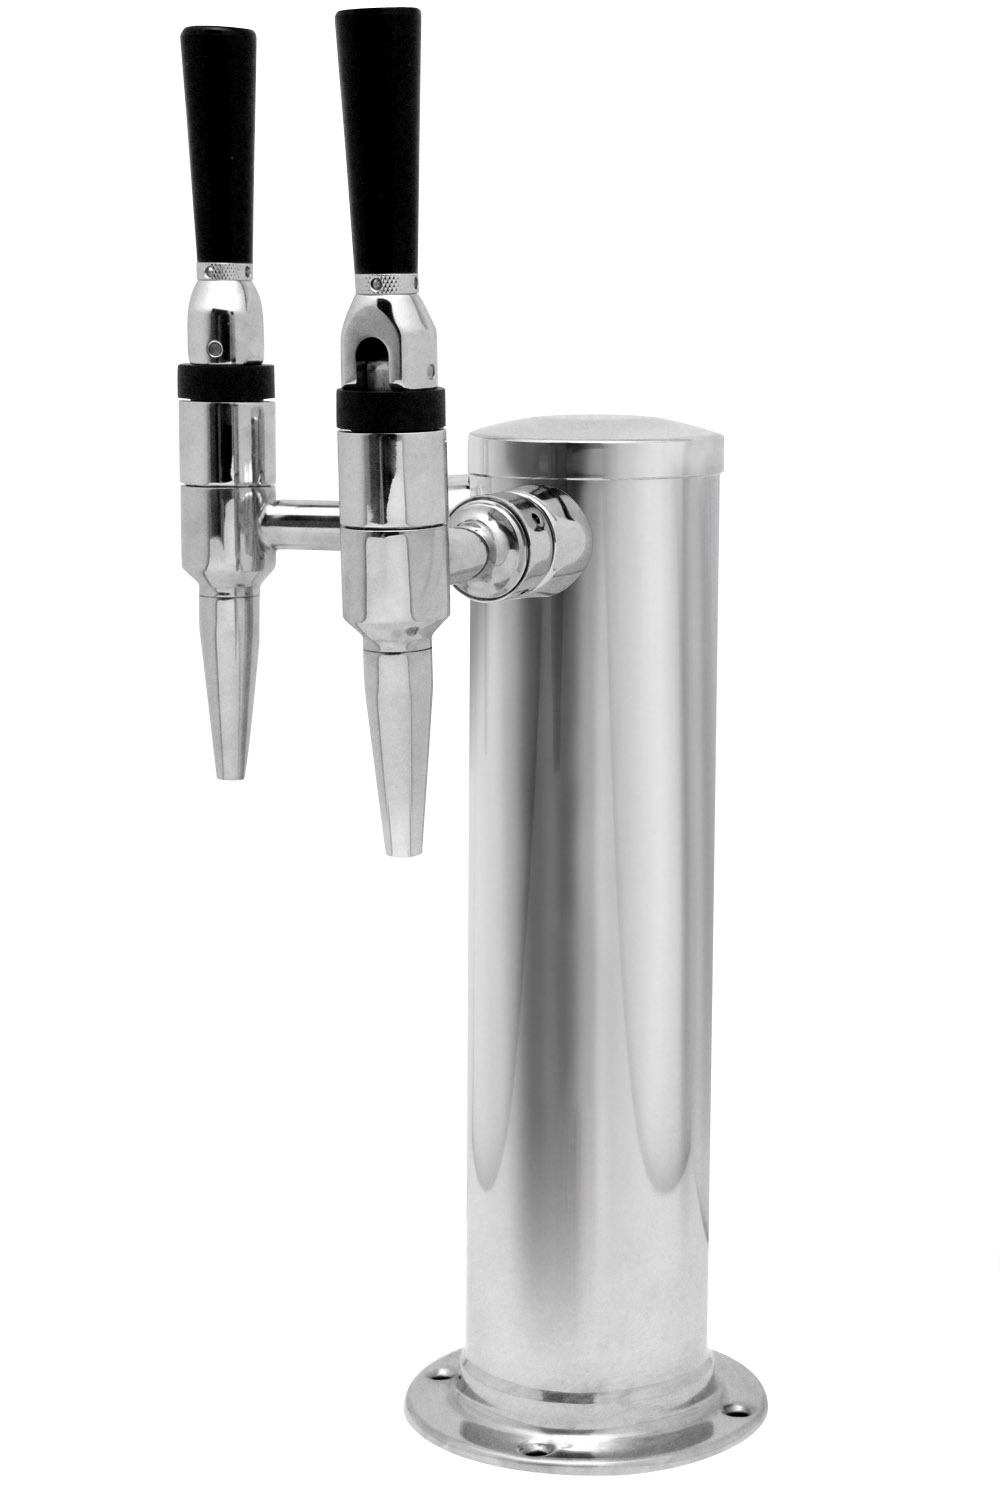 Kegco 2ft Gsf Two Tap Polished Stainless Steel Draft